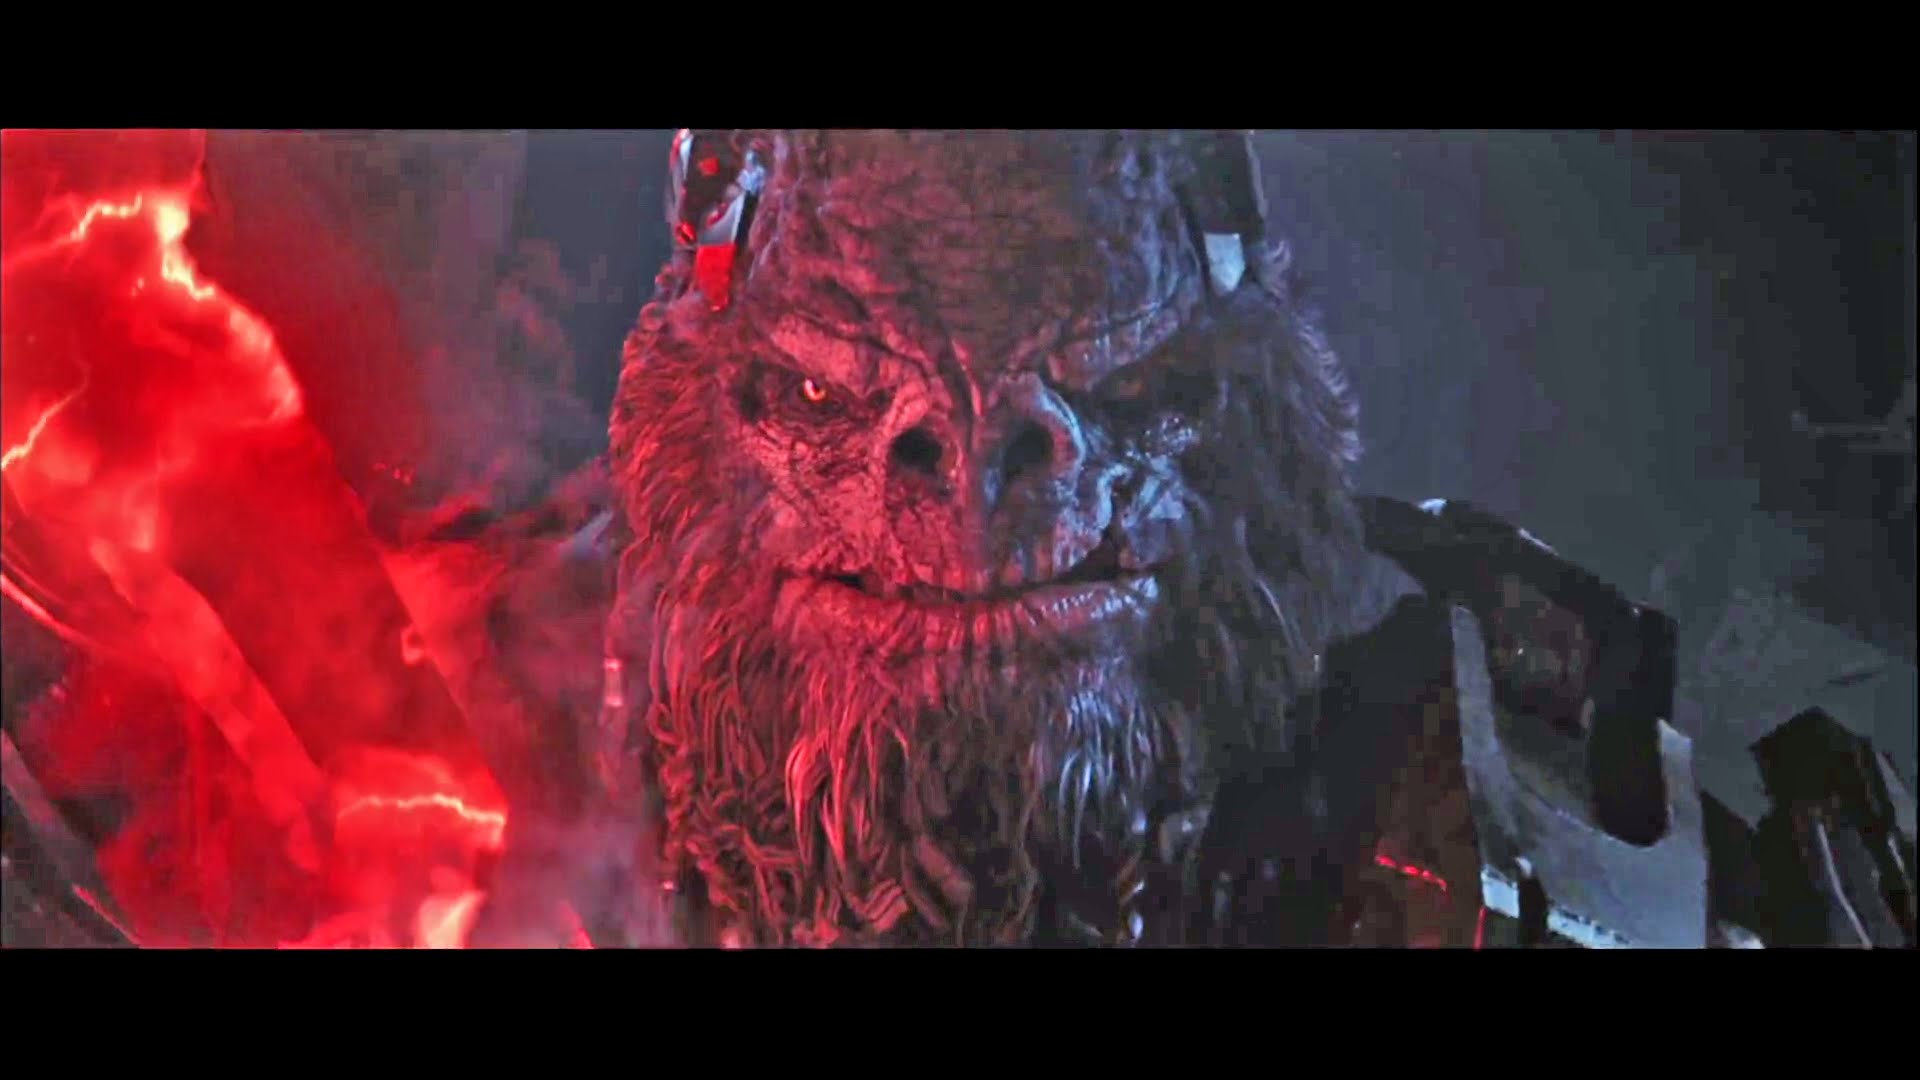 Nintnedo Fall Wallpapers E3 2016 Halo Wars 2 Will Be Playable At The Event